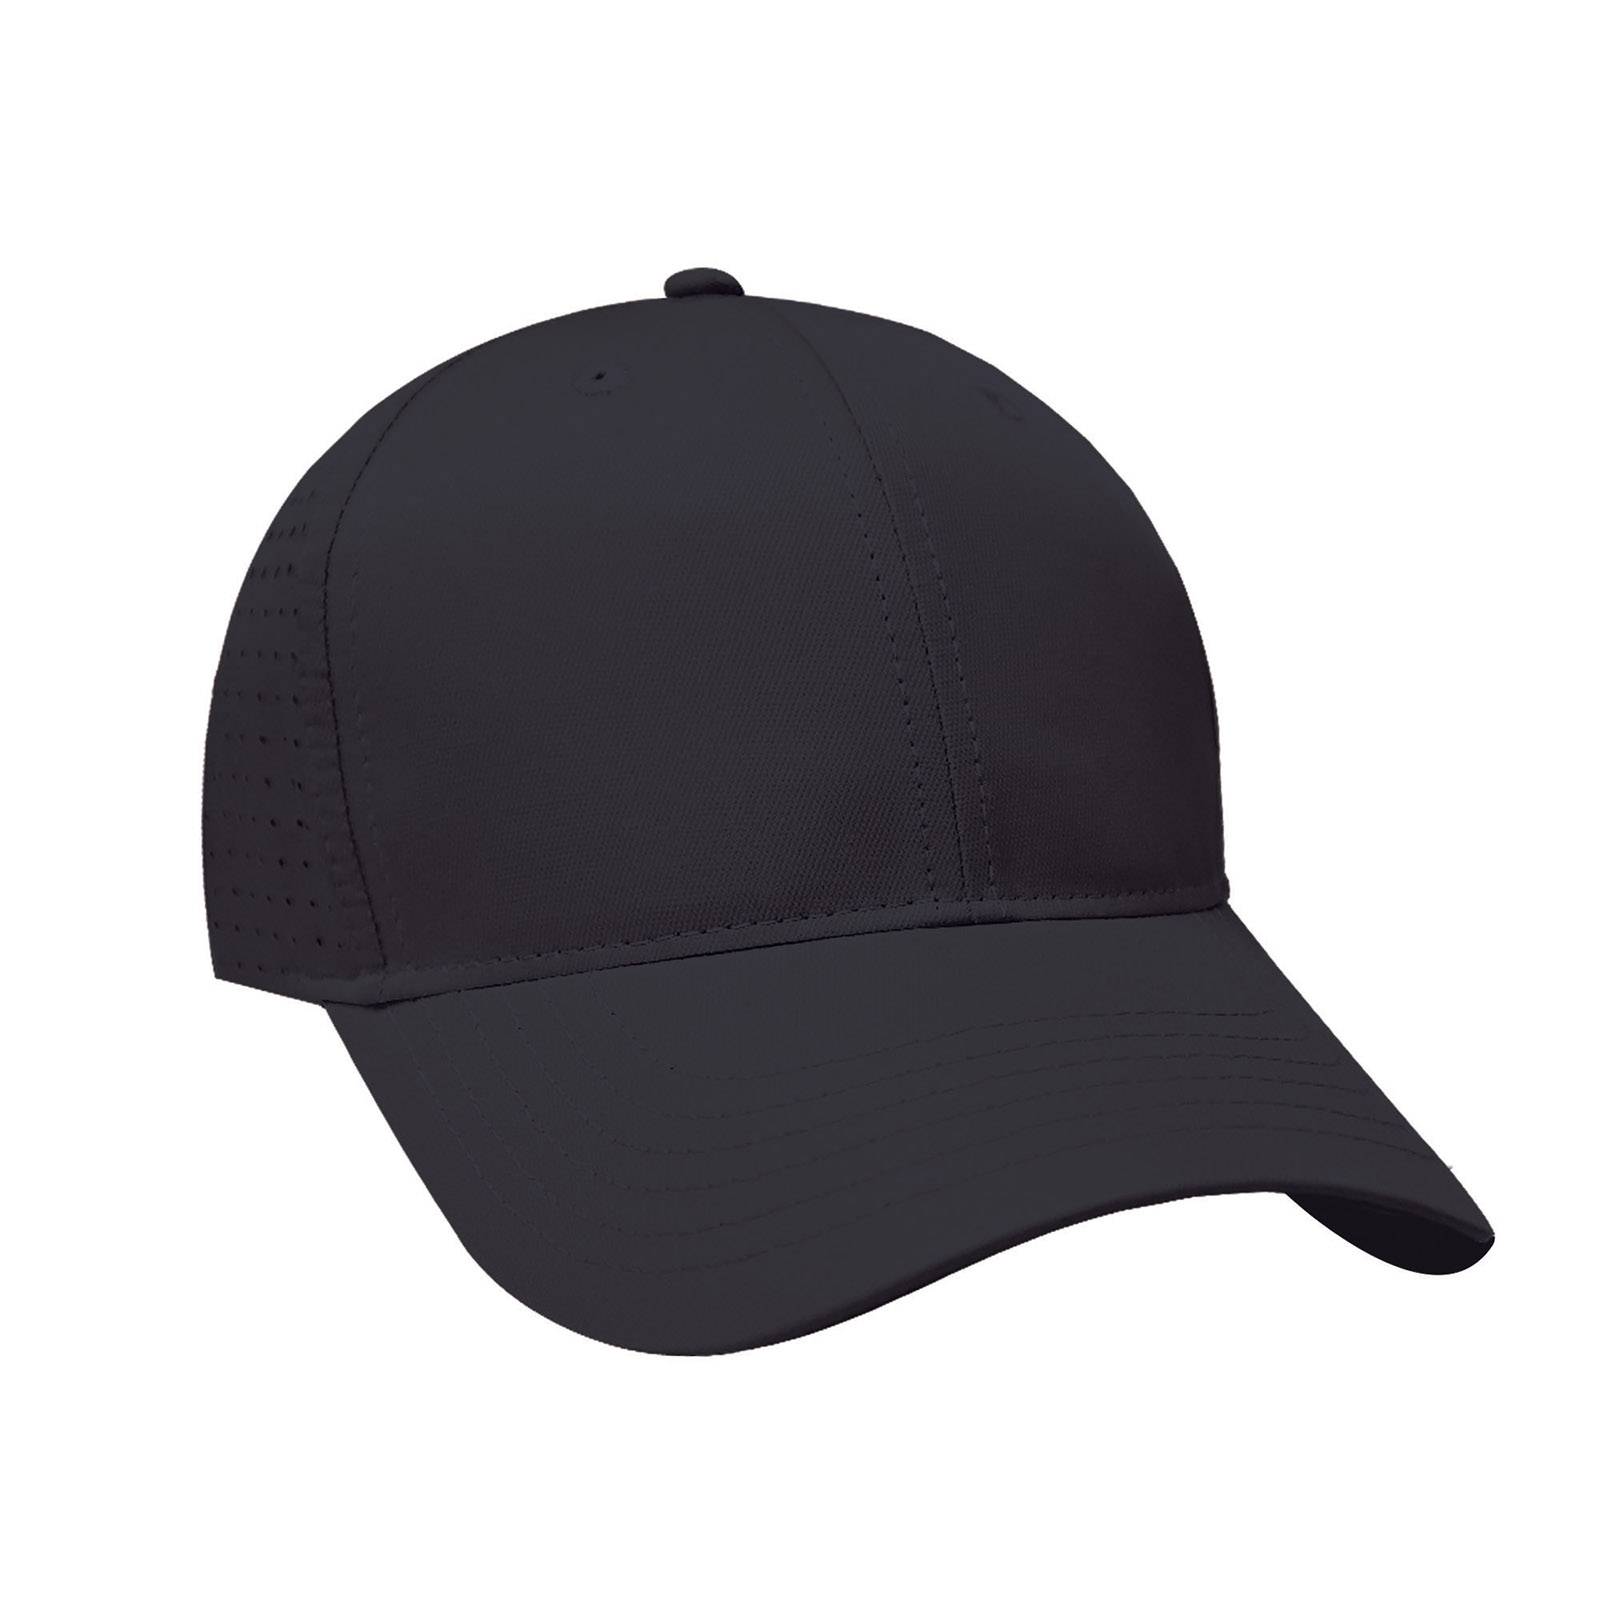 0a60233109 Ferst-dry™, Moisture Wicking, Uv, Structured Front Nebula Jacquard Cap With  Laser